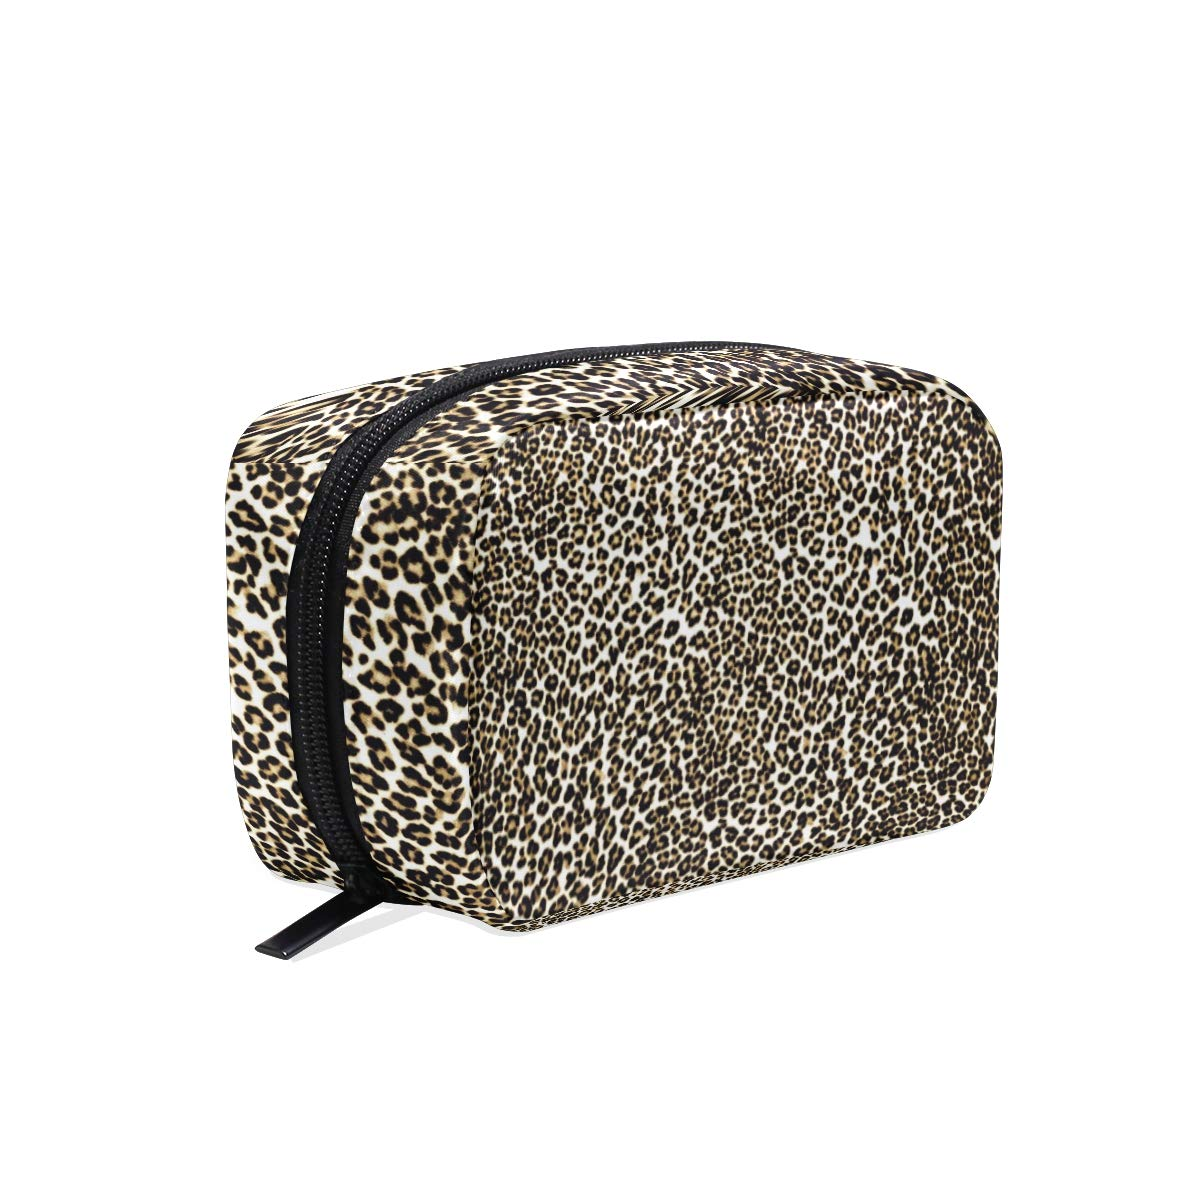 Leopard Print Cosmetic Bag Travel Makeup bags for women makeup pouch Travel bags for toiletries gifts(ii)